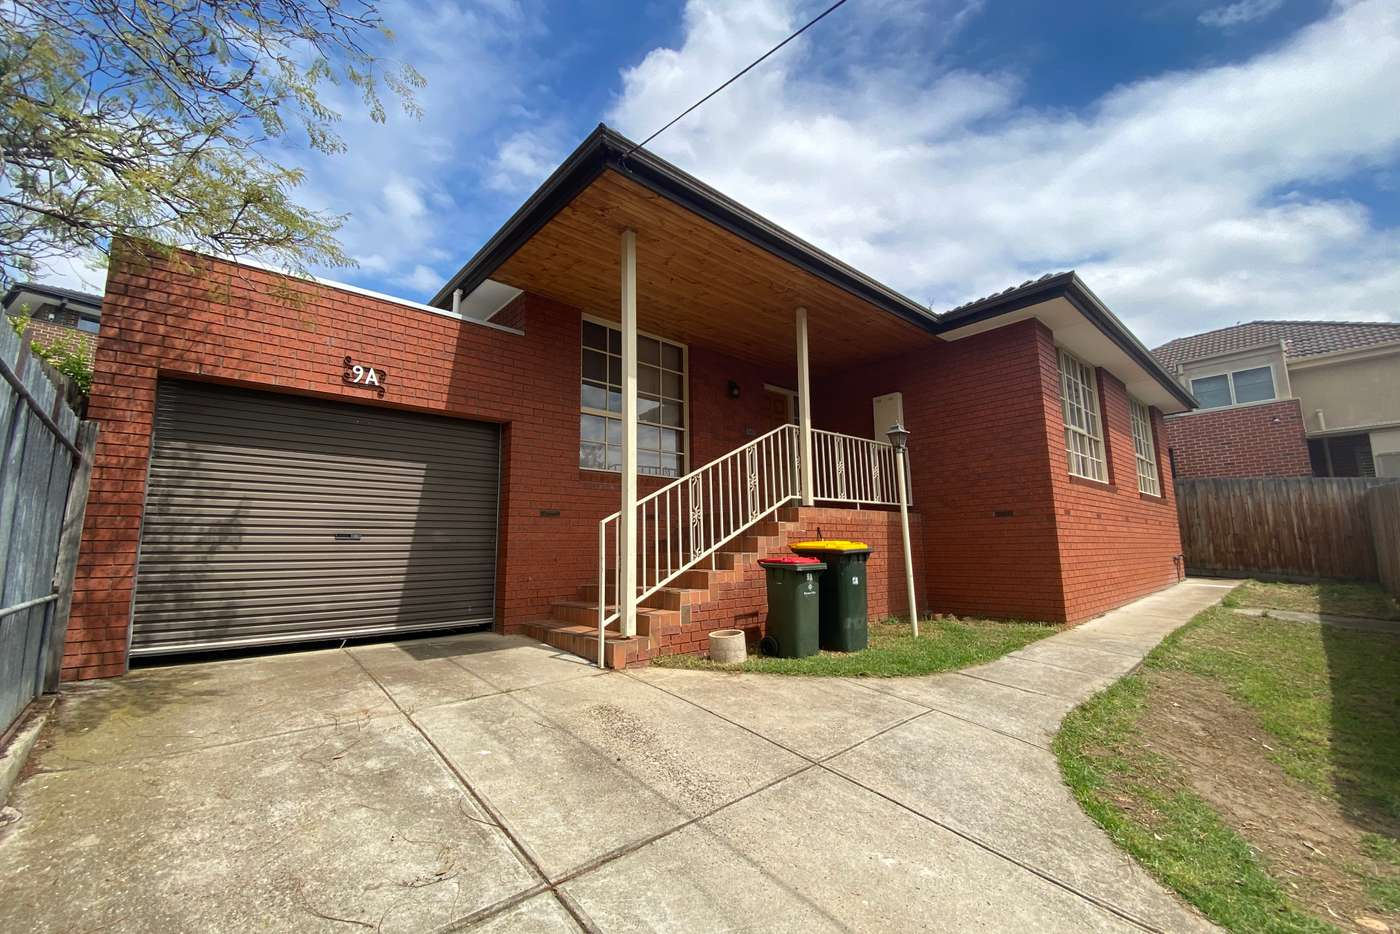 Main view of Homely unit listing, 9A Loeman Street, Strathmore VIC 3041